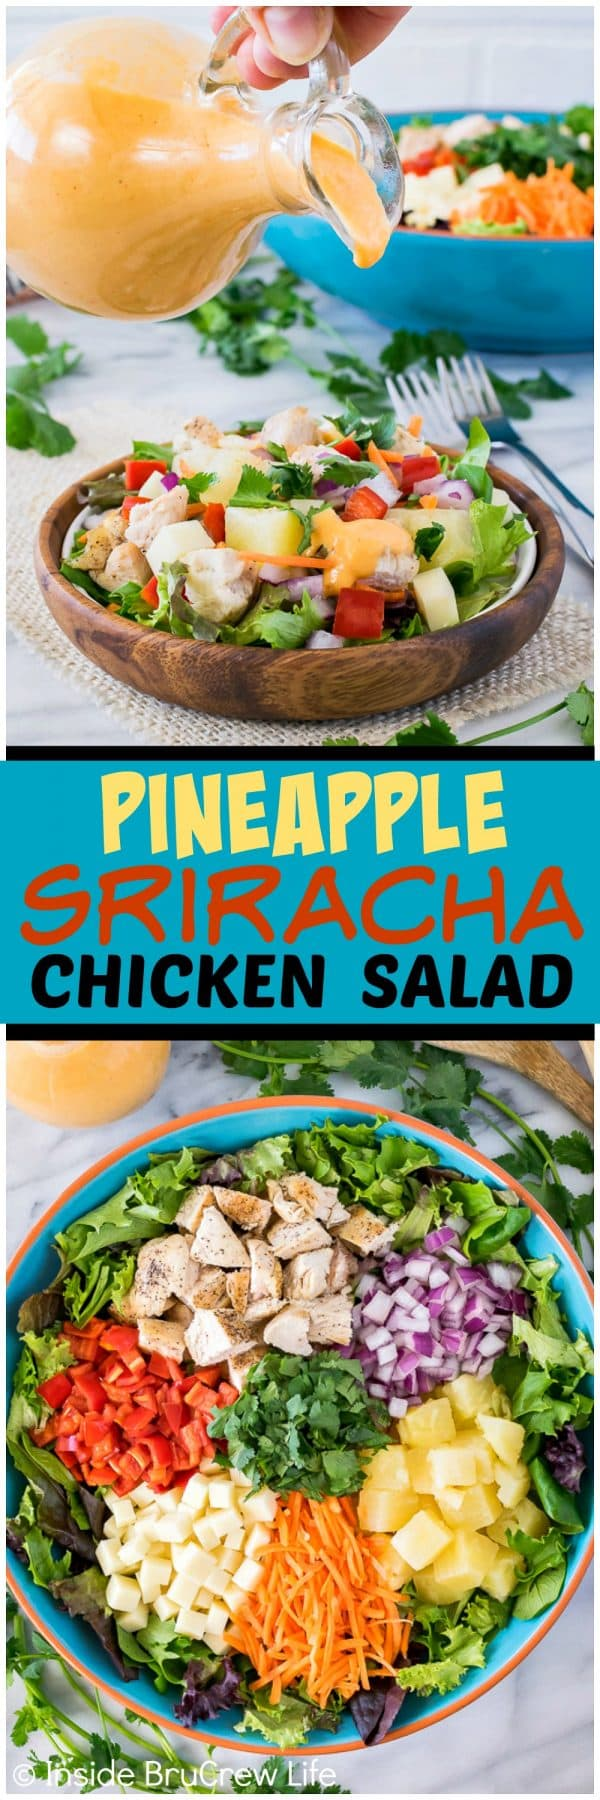 Pineapple Sriracha Chicken Salad - the homemade sweet and spicy dressing makes this veggie salad a keeper! Perfect recipe for hot summer months!